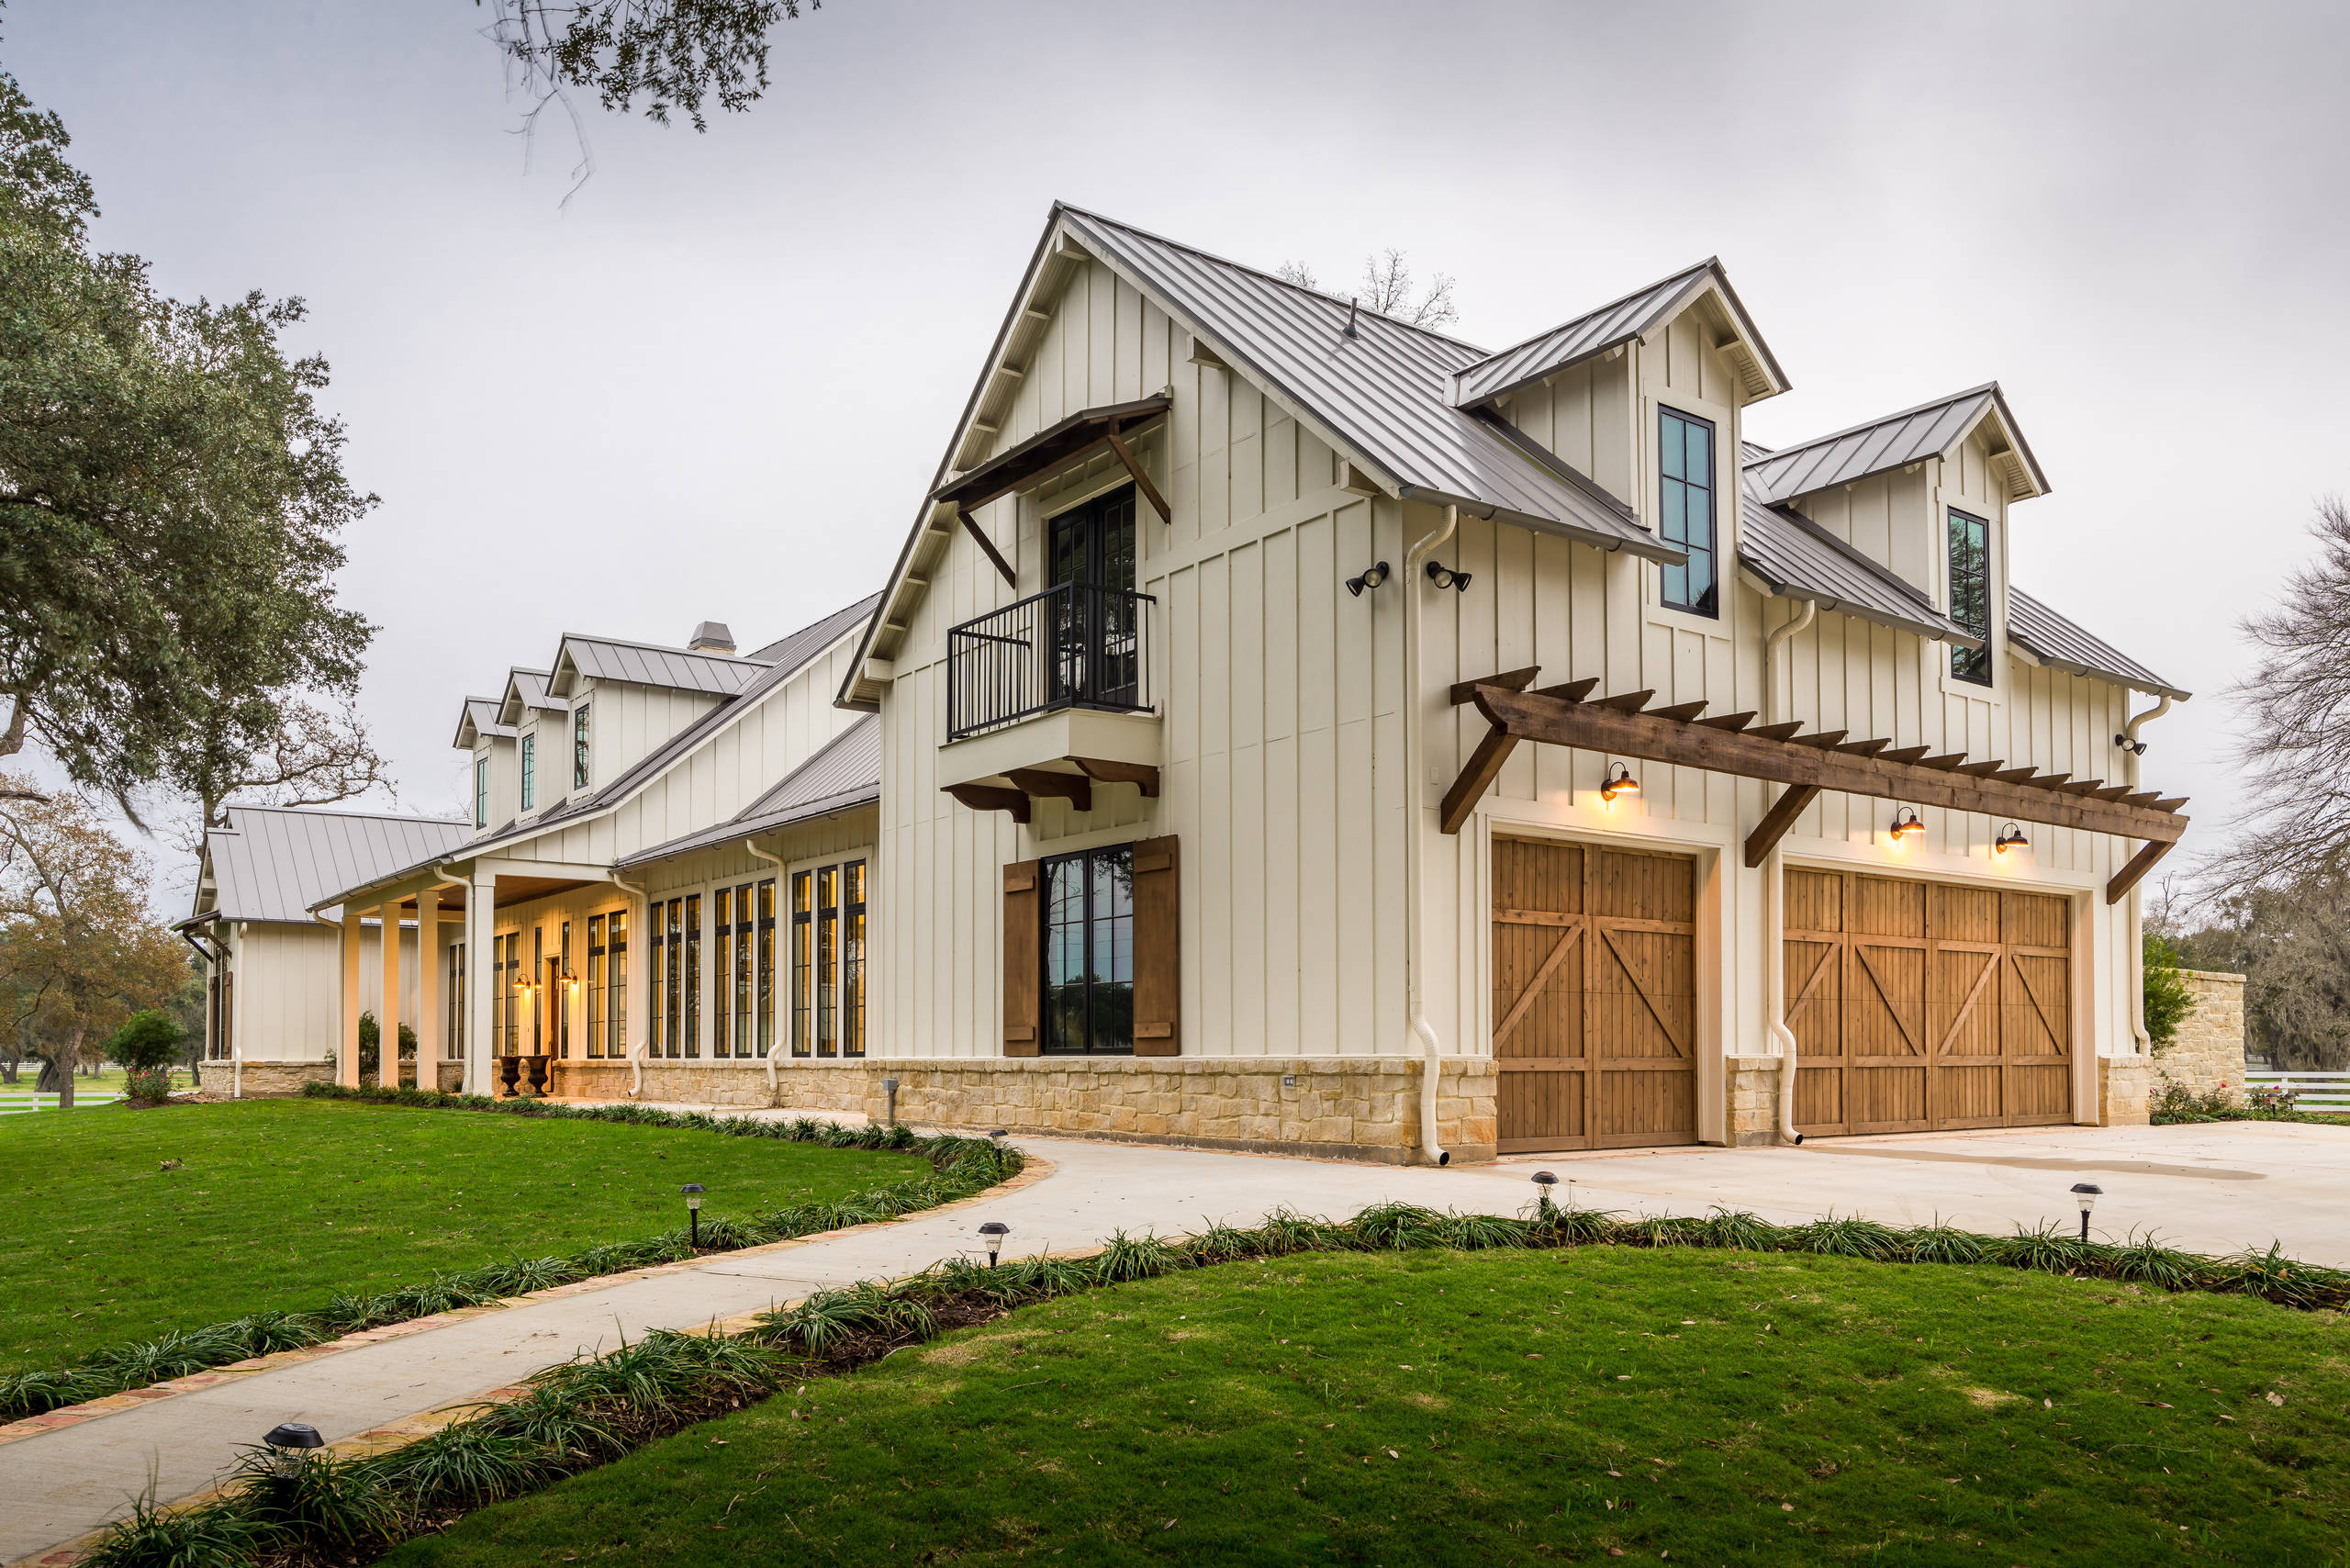 75 Beautiful Farmhouse Beige Exterior Home Pictures Ideas January 2021 Houzz